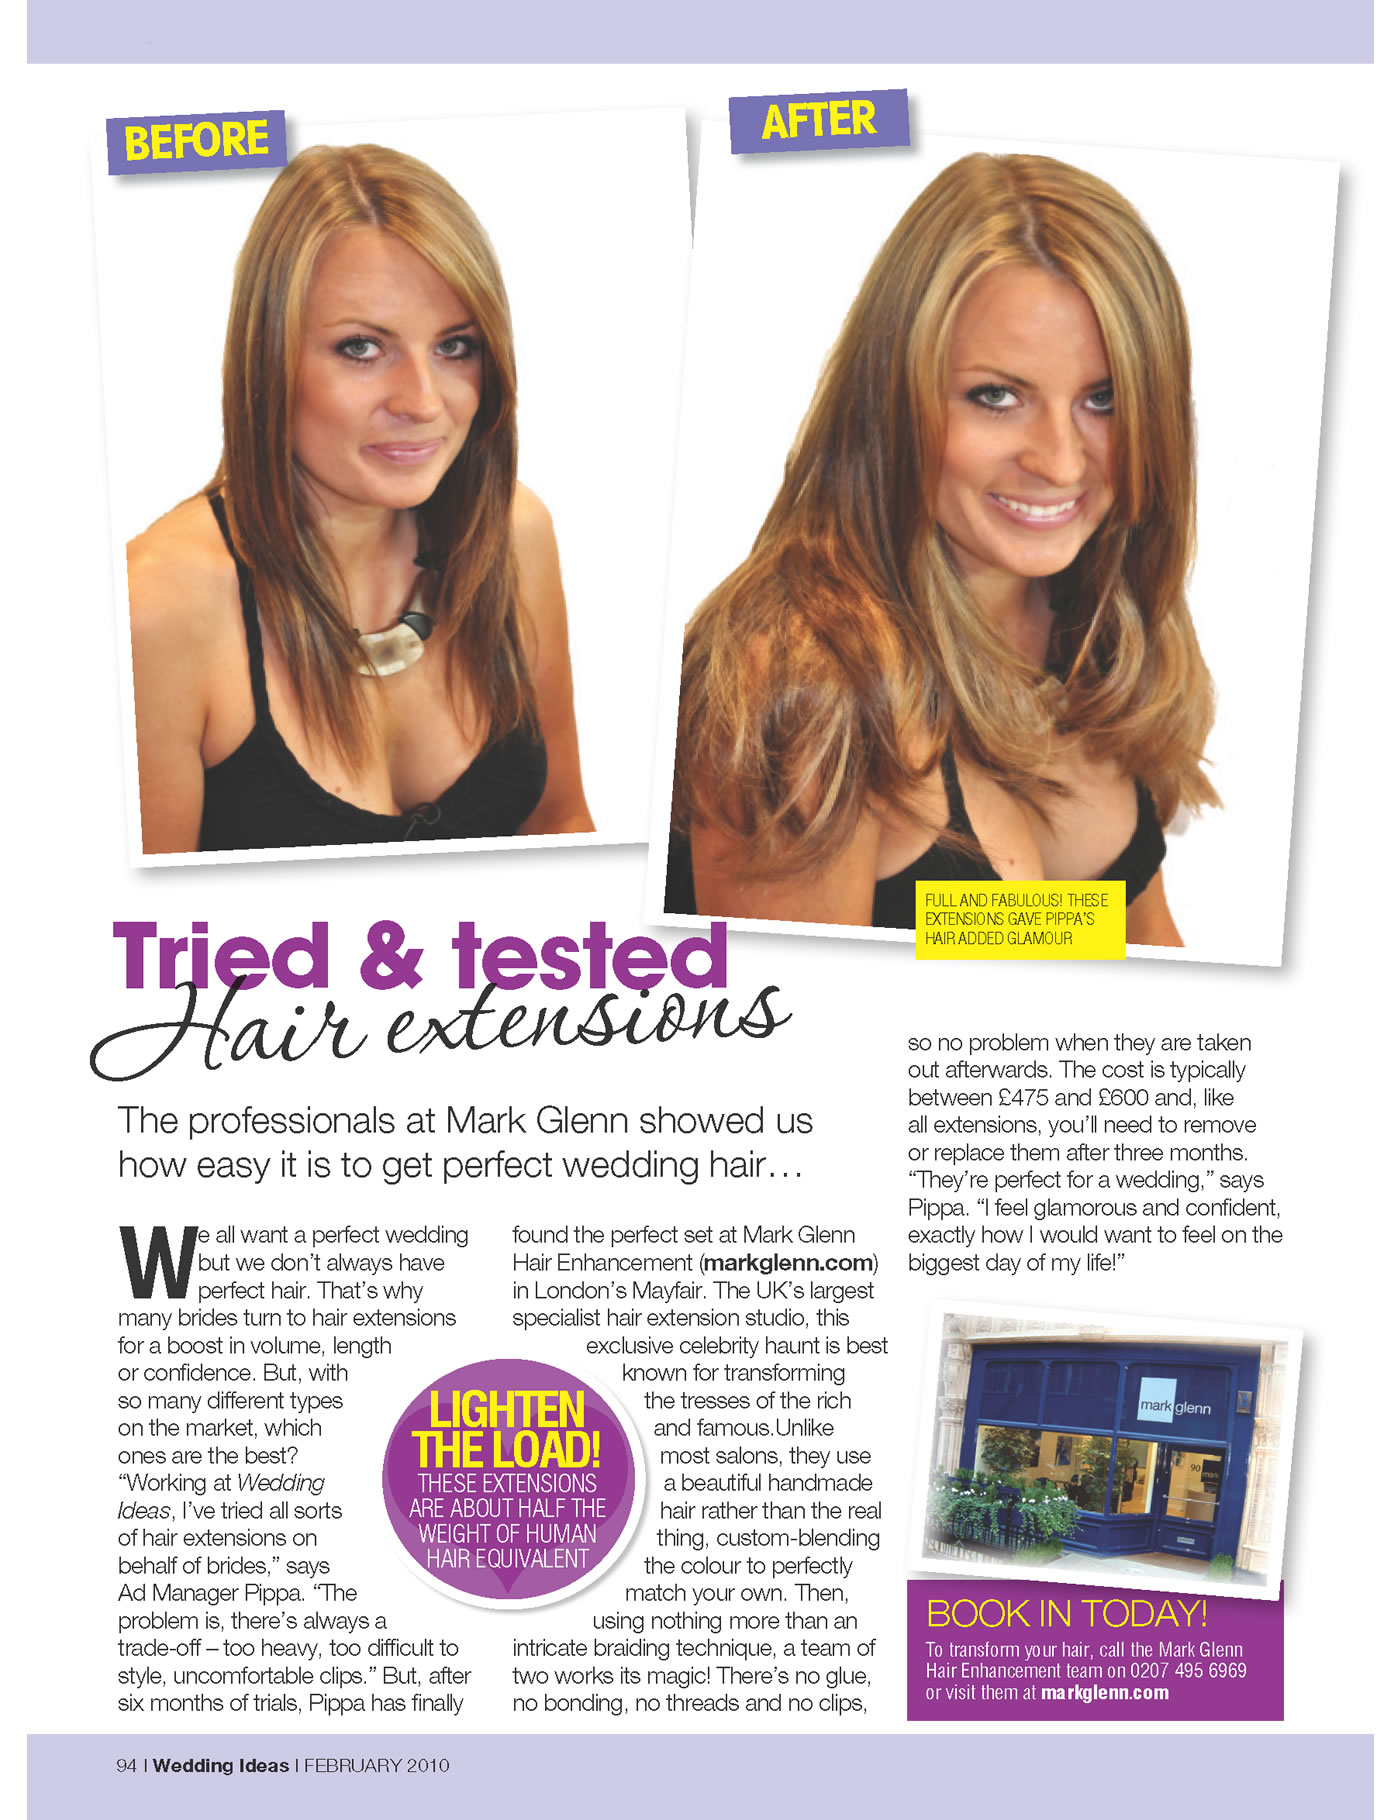 Mark Glenn hair extensions voted the best after 6 months of magazine trials